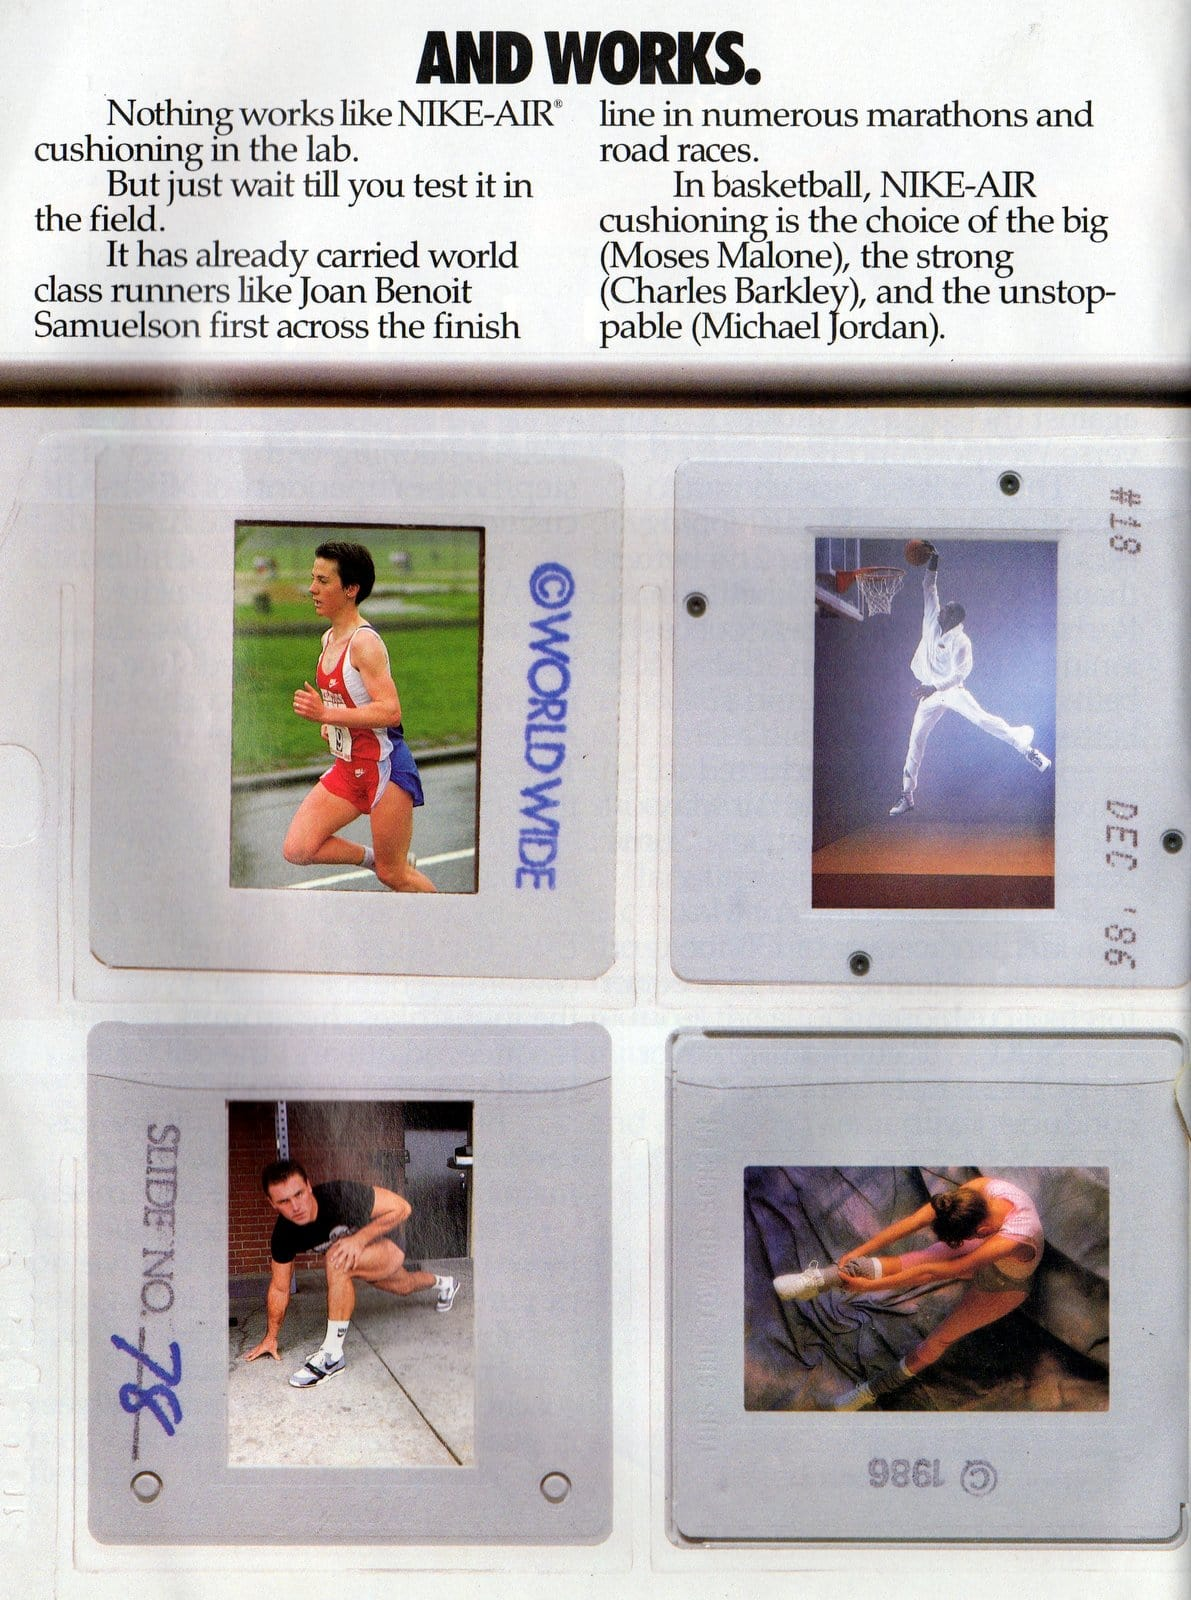 Vintage Nike Air shoes ad from March 1987 (2)